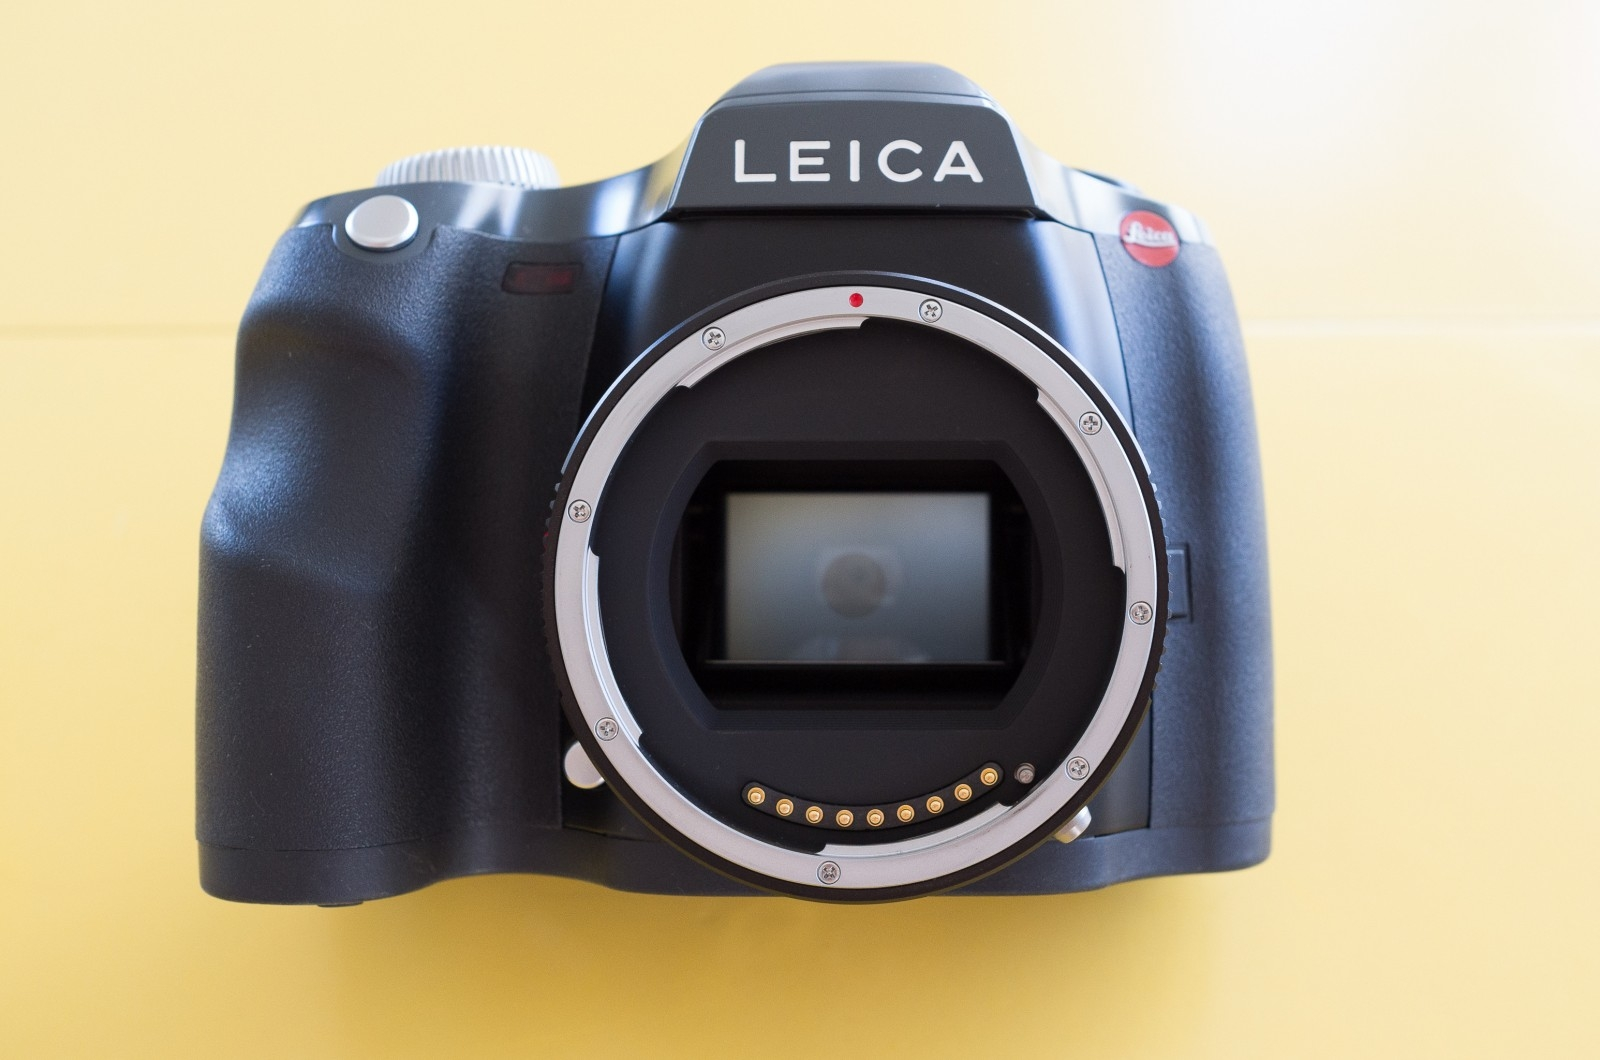 leica_s-e_with_adapter_1